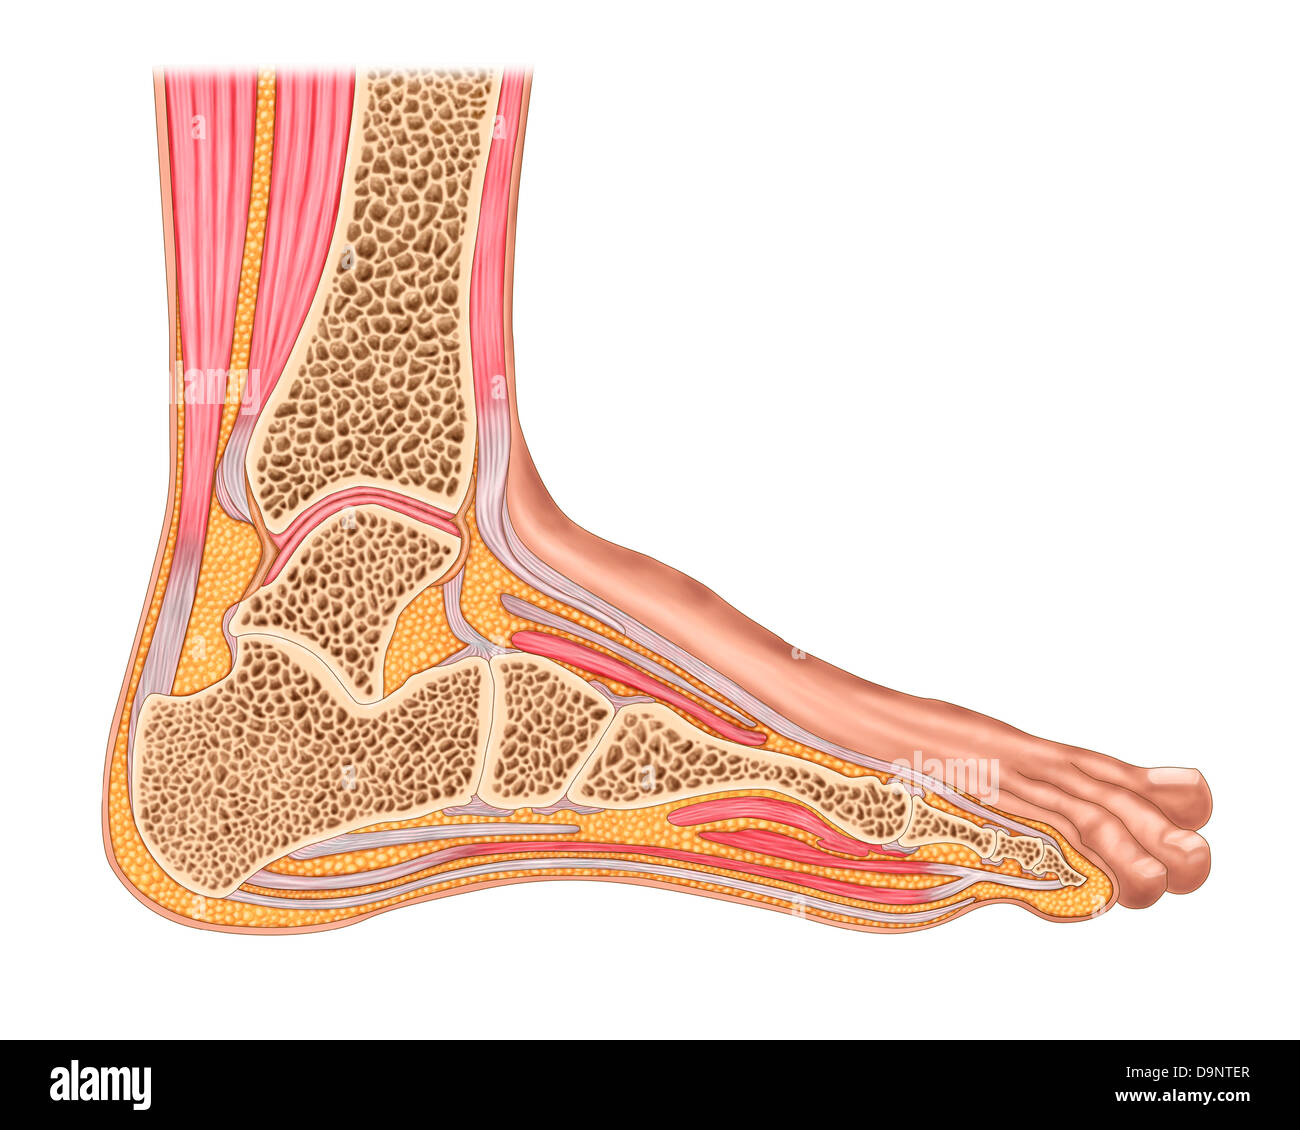 Foot Ligament Stock Photos & Foot Ligament Stock Images - Alamy